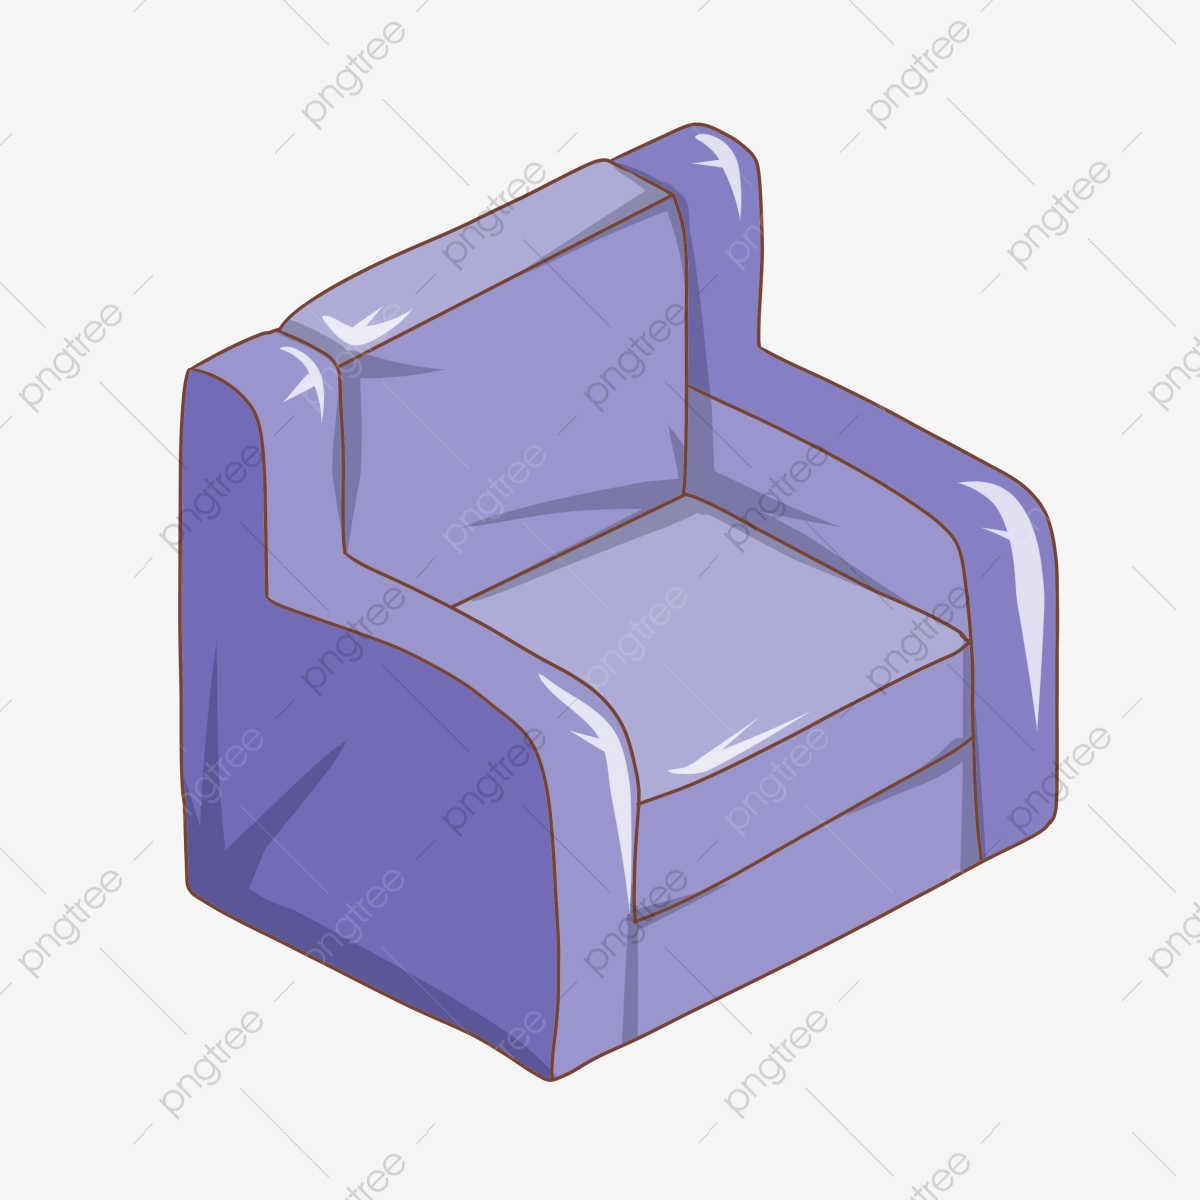 Admirable Purple Sofa Beautiful Sofa Furniture Sofa Home Improvement Ibusinesslaw Wood Chair Design Ideas Ibusinesslaworg